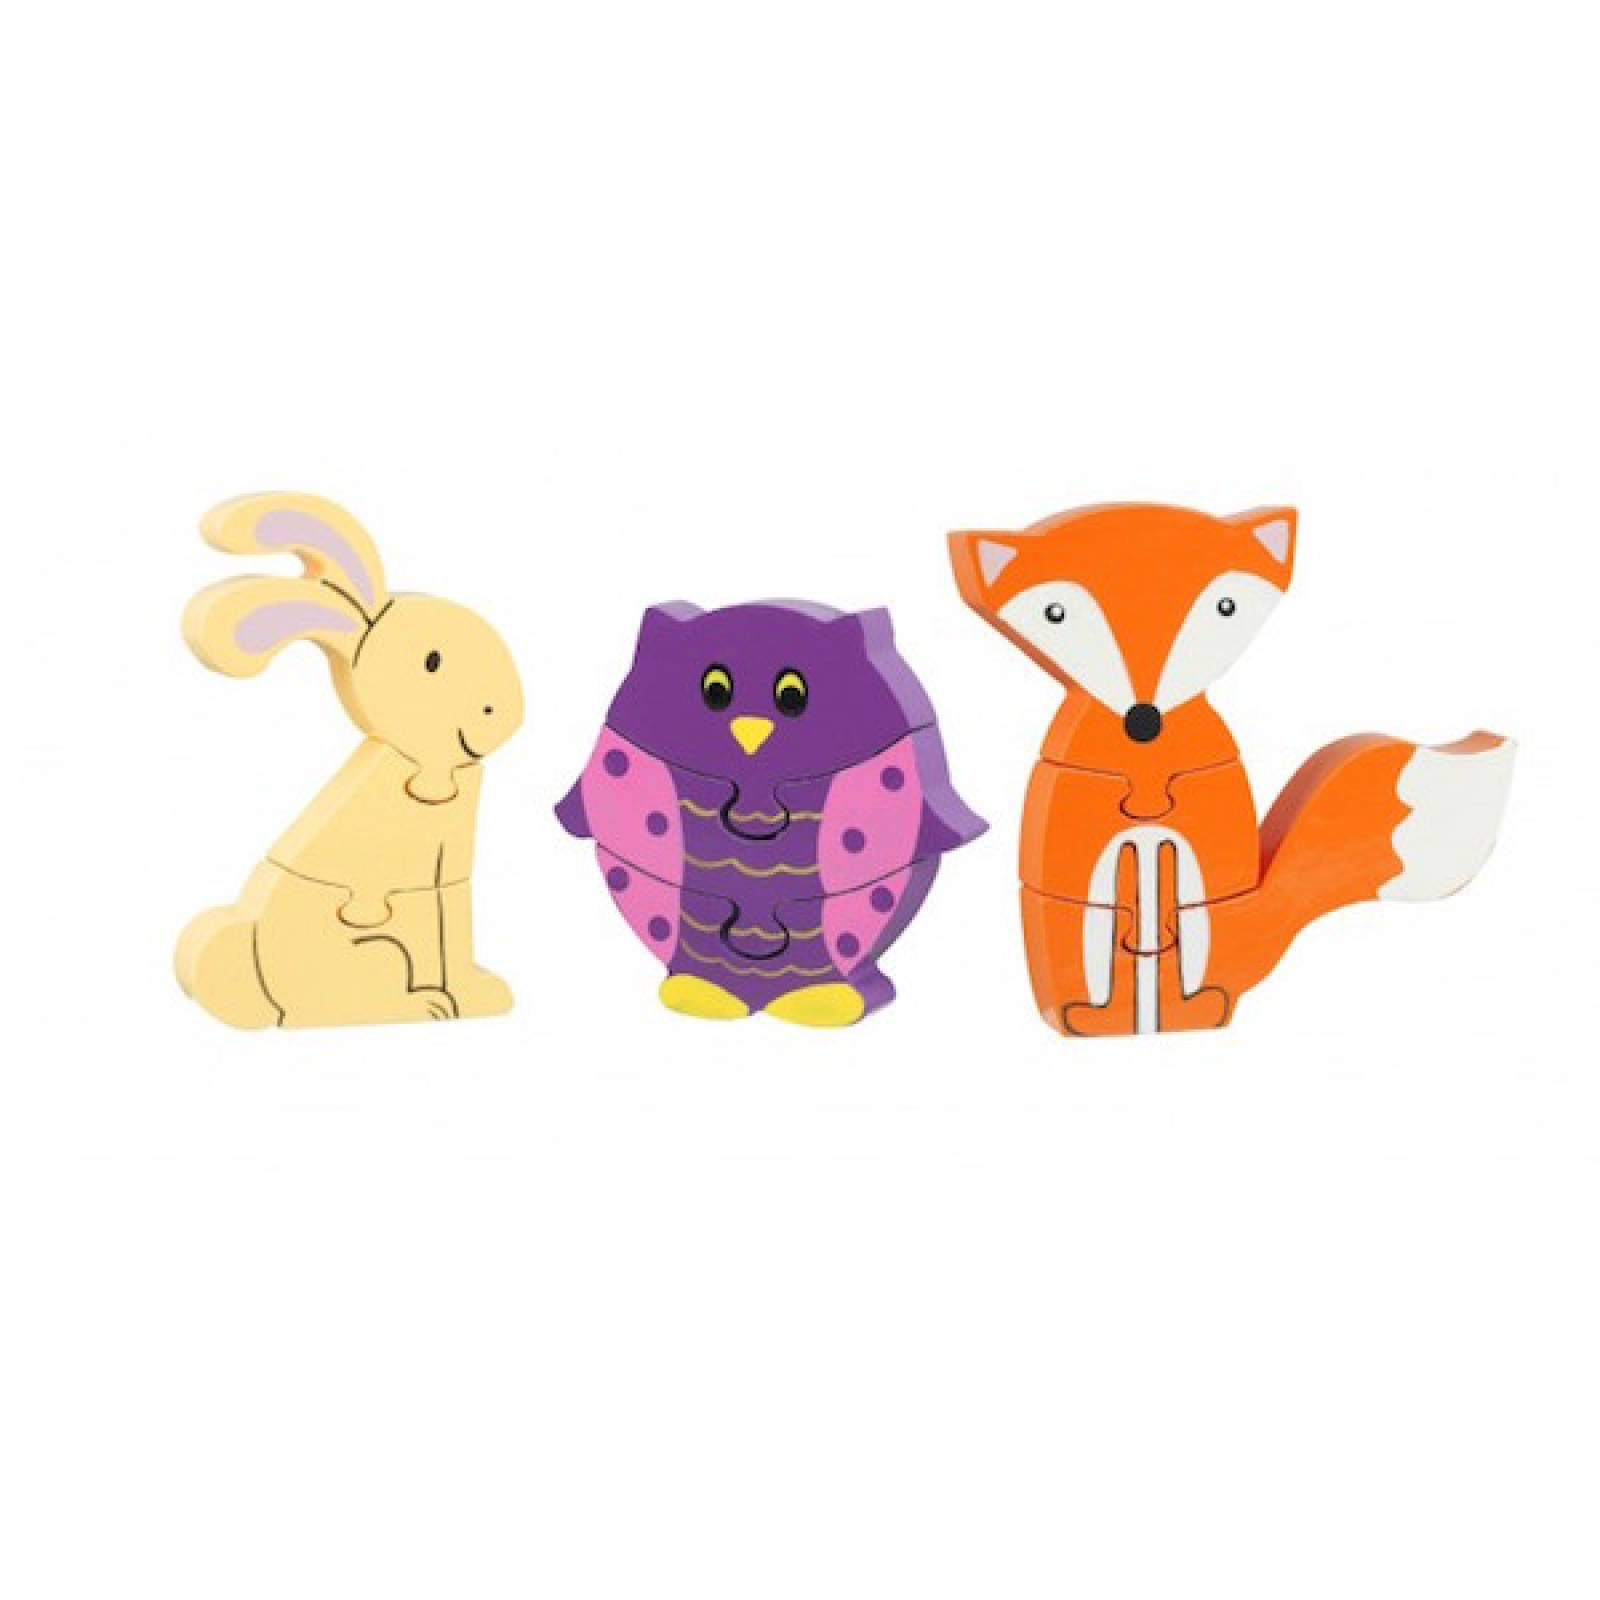 Woodland Mini Puzzles - Set Of 3 Wooden Puzzles 1+